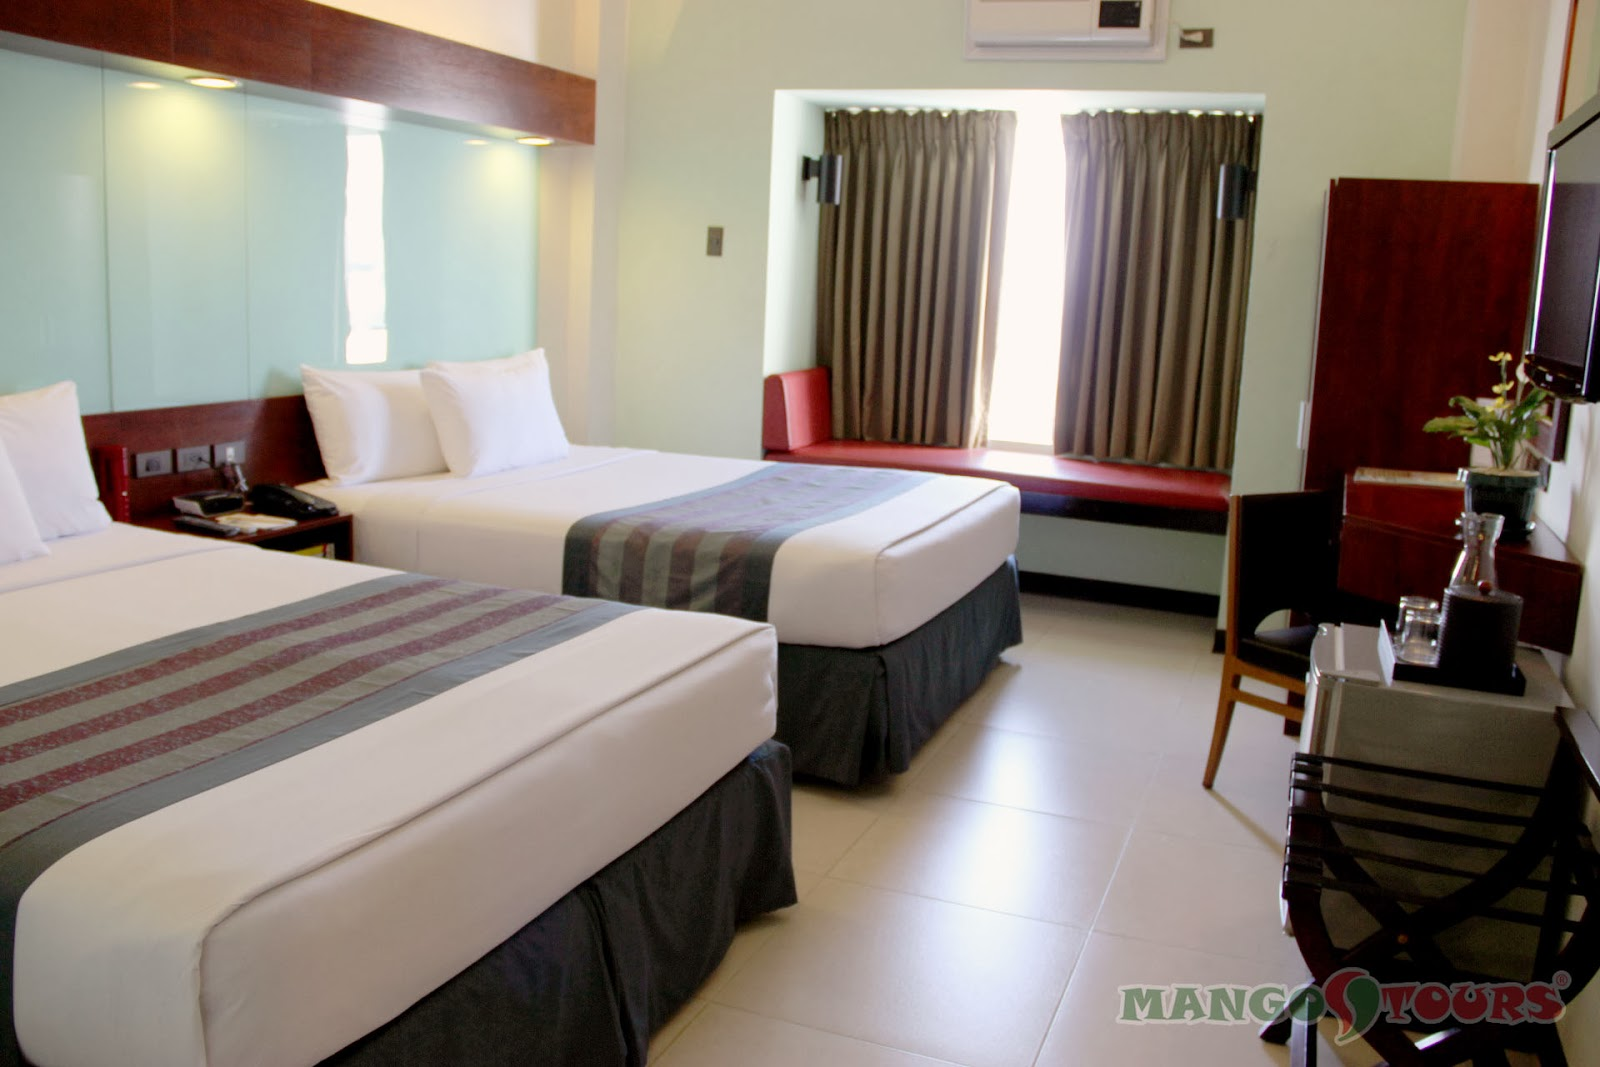 Mango Tours Microtel by Wyndham Mall of Asia rooms accommodation